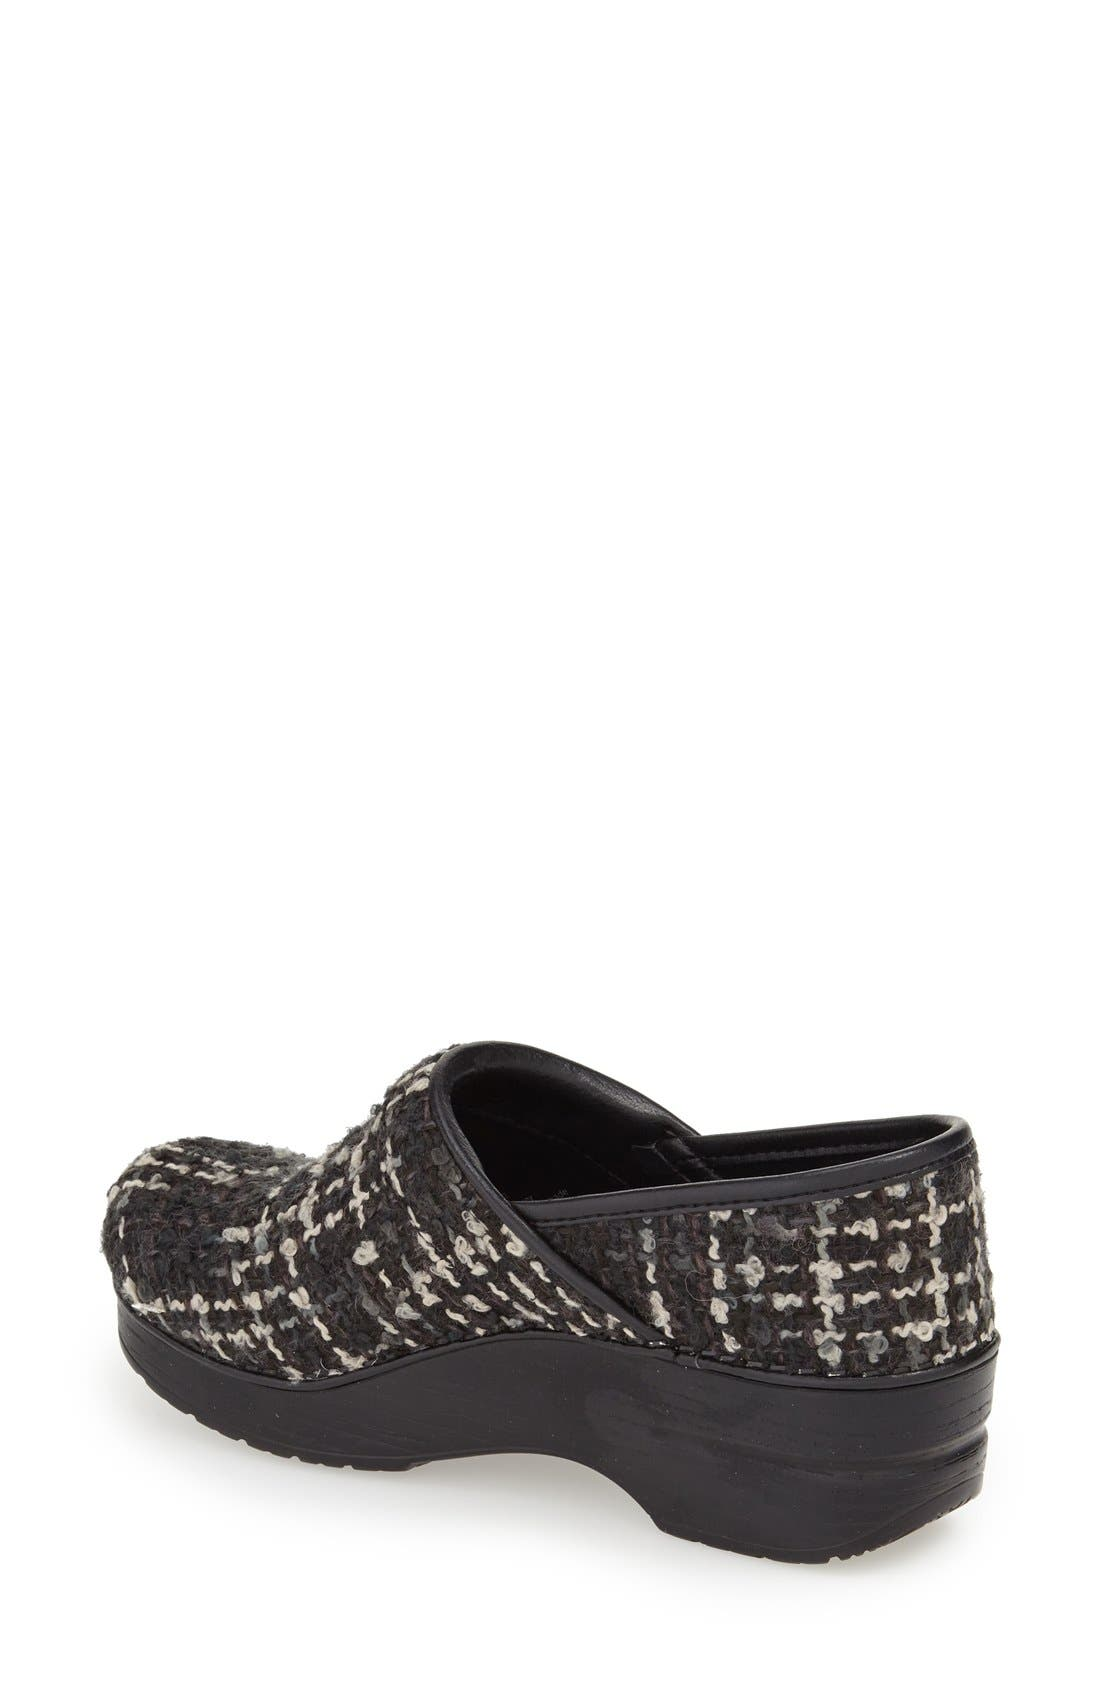 'Pro' Pattern Clog,                             Alternate thumbnail 2, color,                             Black Textured Fabric